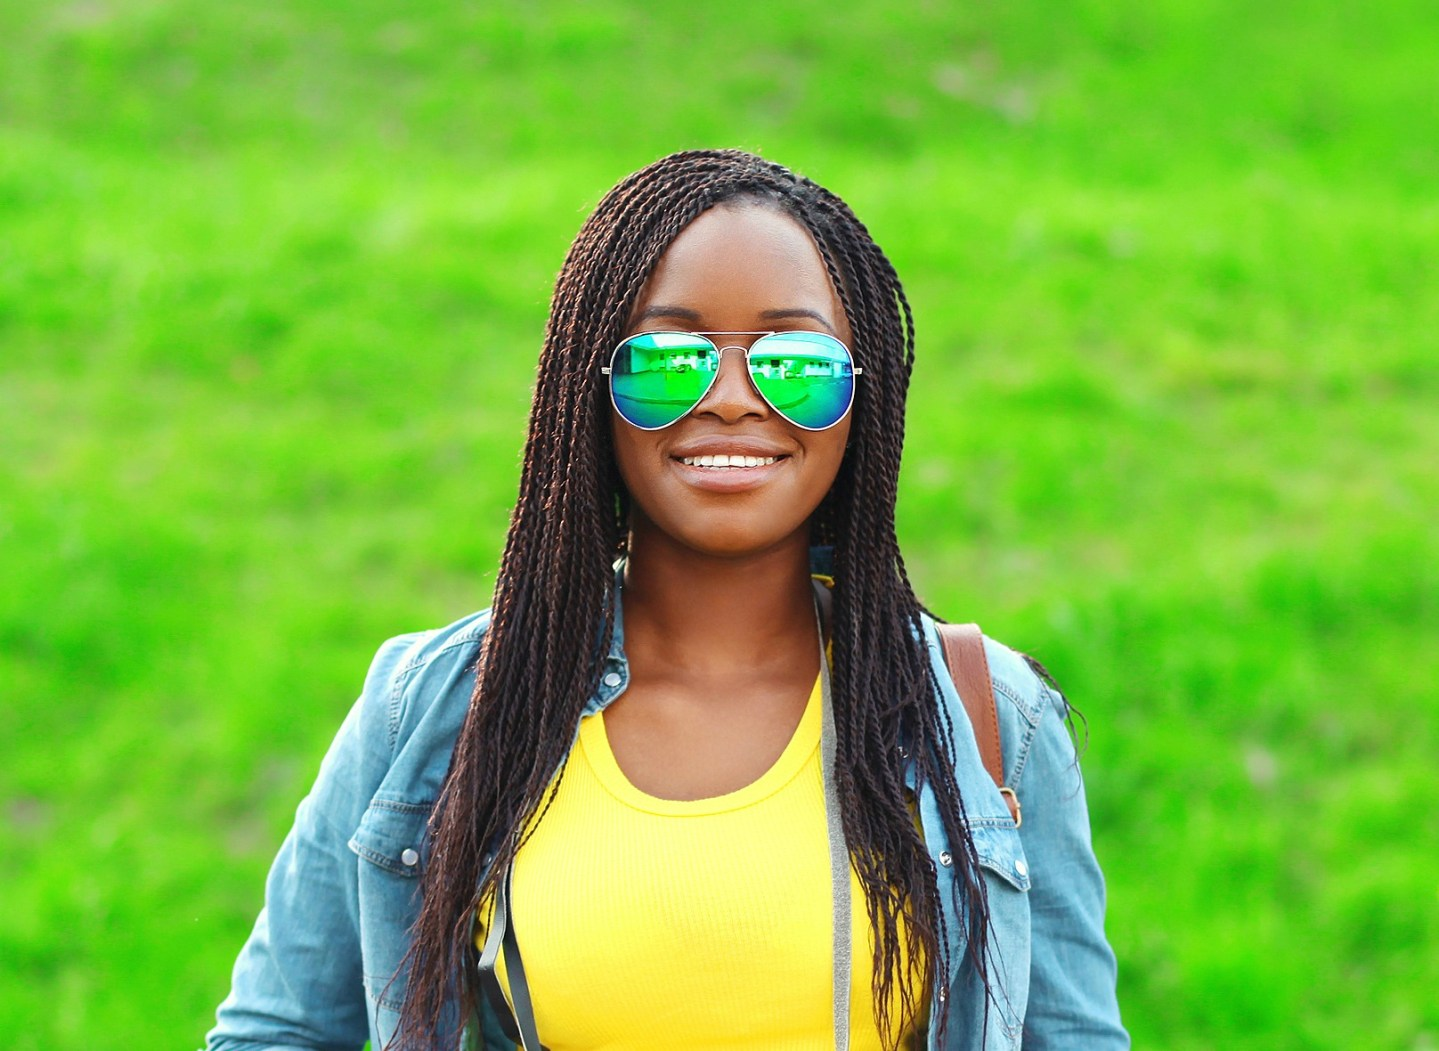 How To Keep A Clean Scalp In A Protective Style